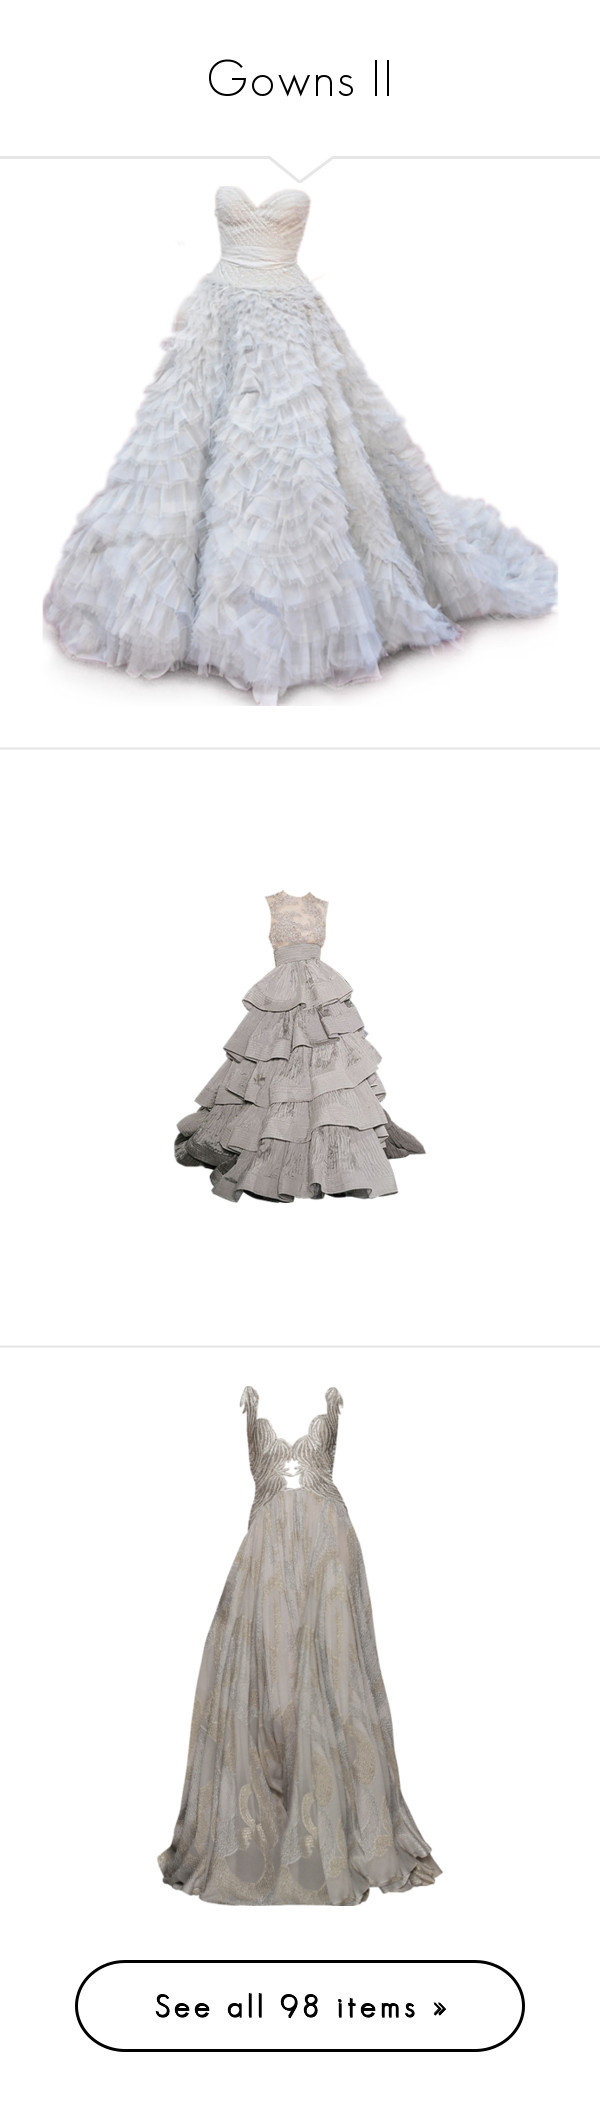 """""""Gowns II"""" by moniquehannagan ❤ liked on Polyvore featuring dresses, gowns, long dresses, vestidos, oscar de la renta evening gowns, oscar de la renta, oscar de la renta dresses, oscar de la renta ball gown, oscar de la renta gown and evening gowns"""